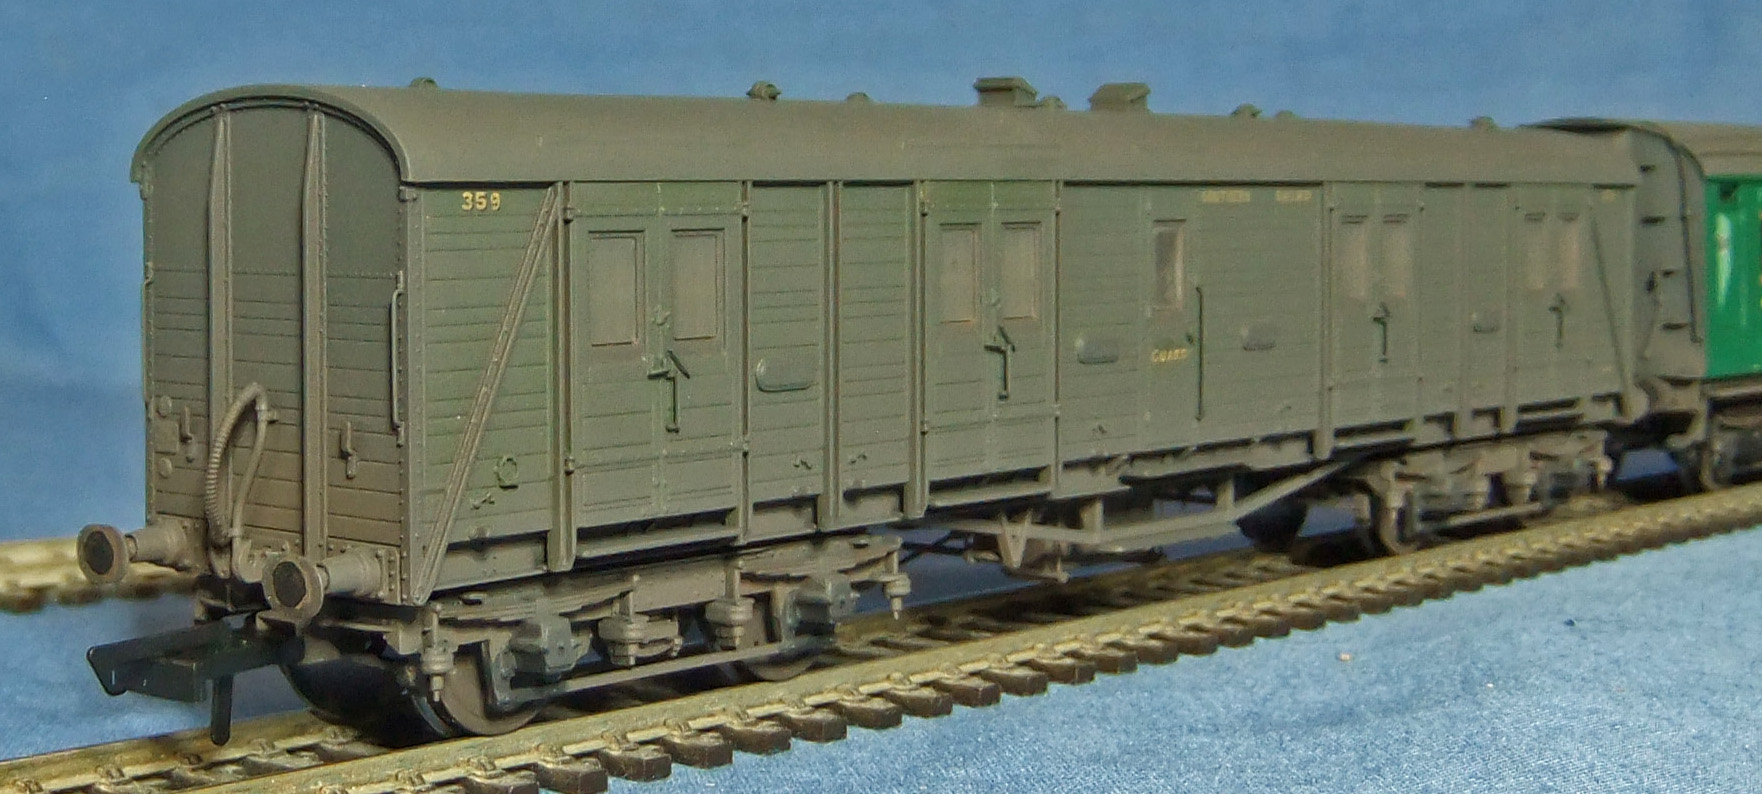 SR Van B No.359 - weathered